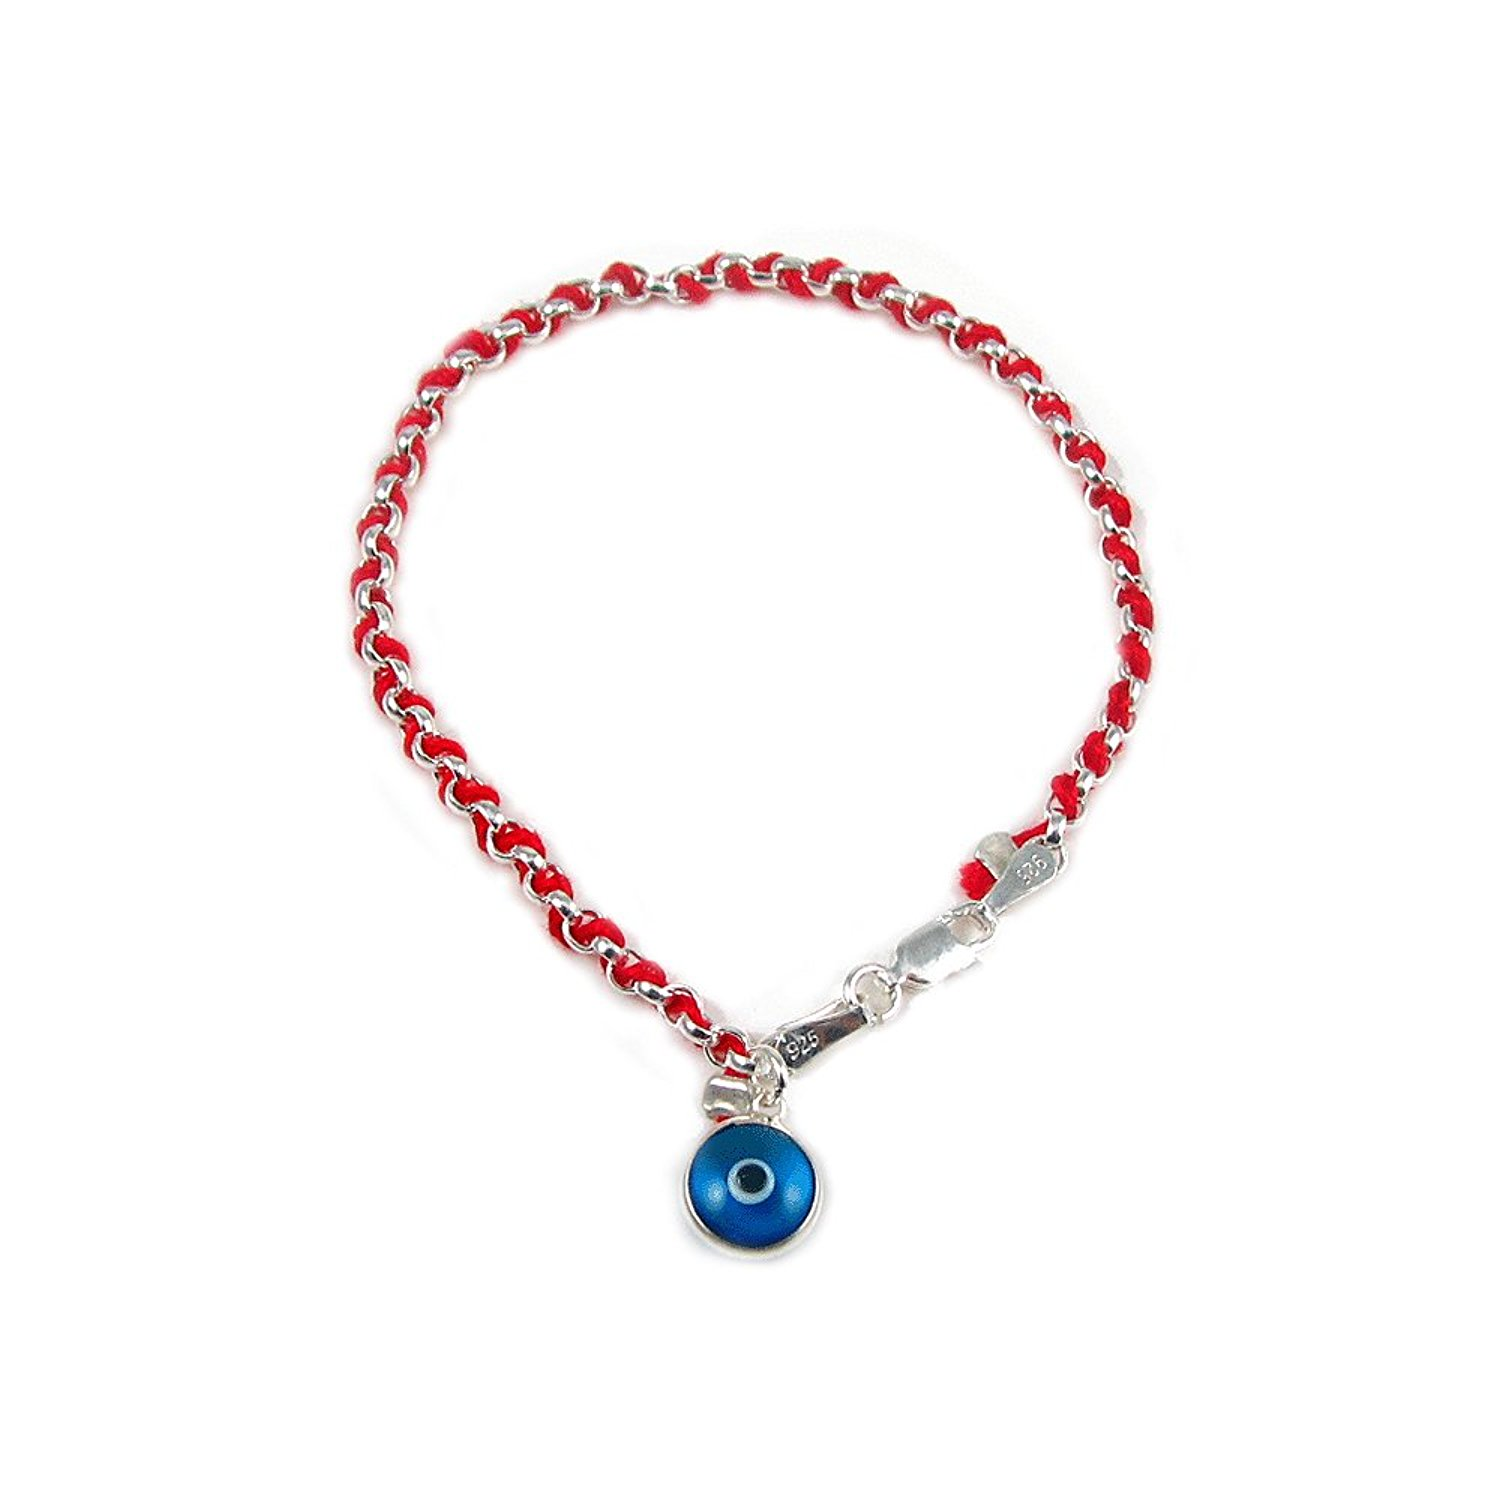 mati evil string amazon protection kabbalah lucky wbml nazar com j bracelet jewelry bead red eye dp charm